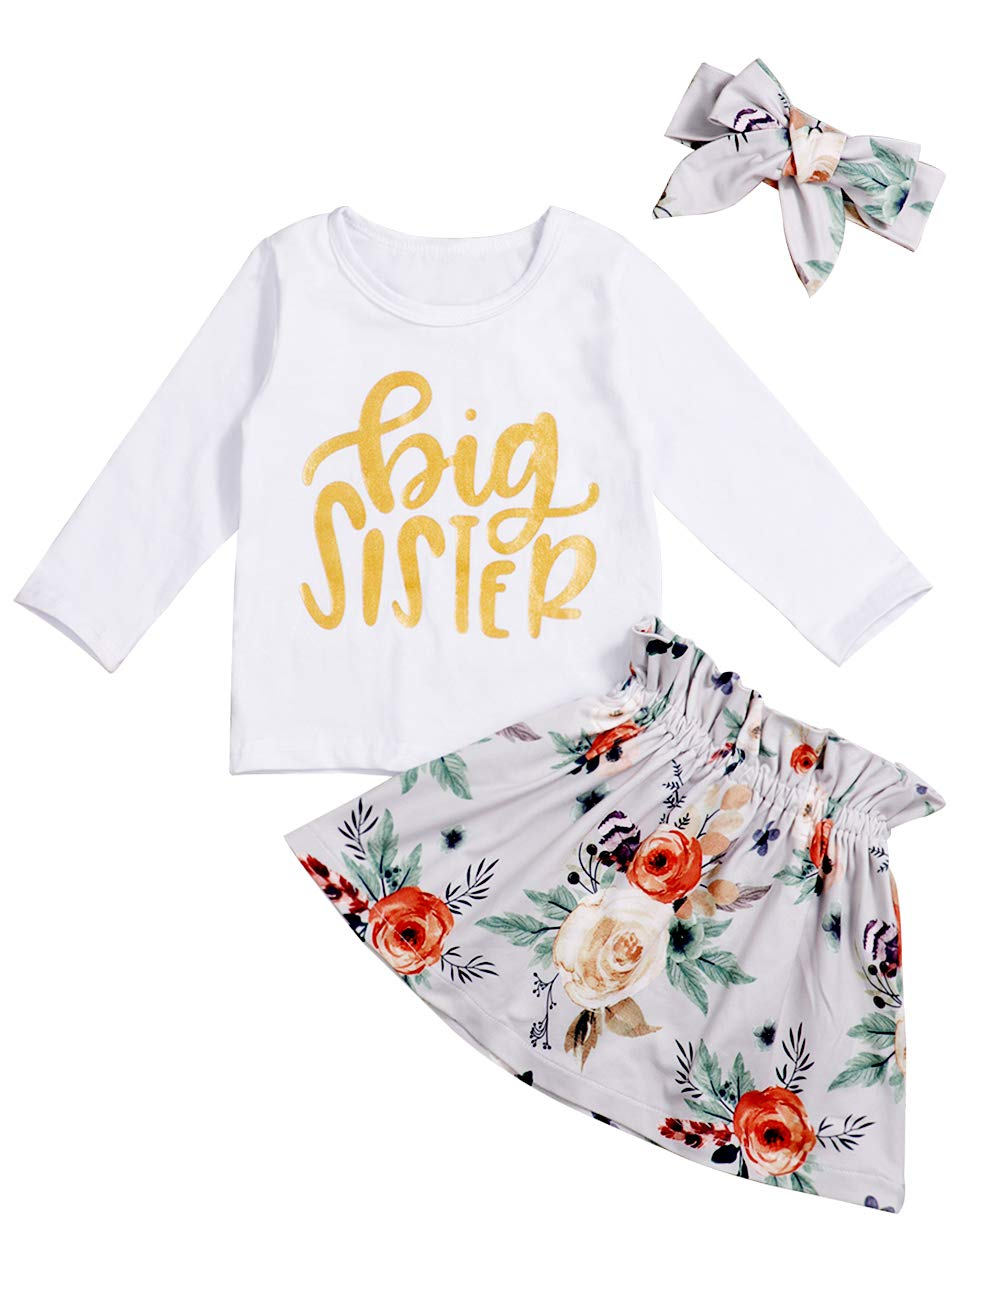 Toddler Baby Girls Little Sister Romper Big Sister T-Shirt Tops Matching Outfits Set Floral Tutu Skirt and Pants